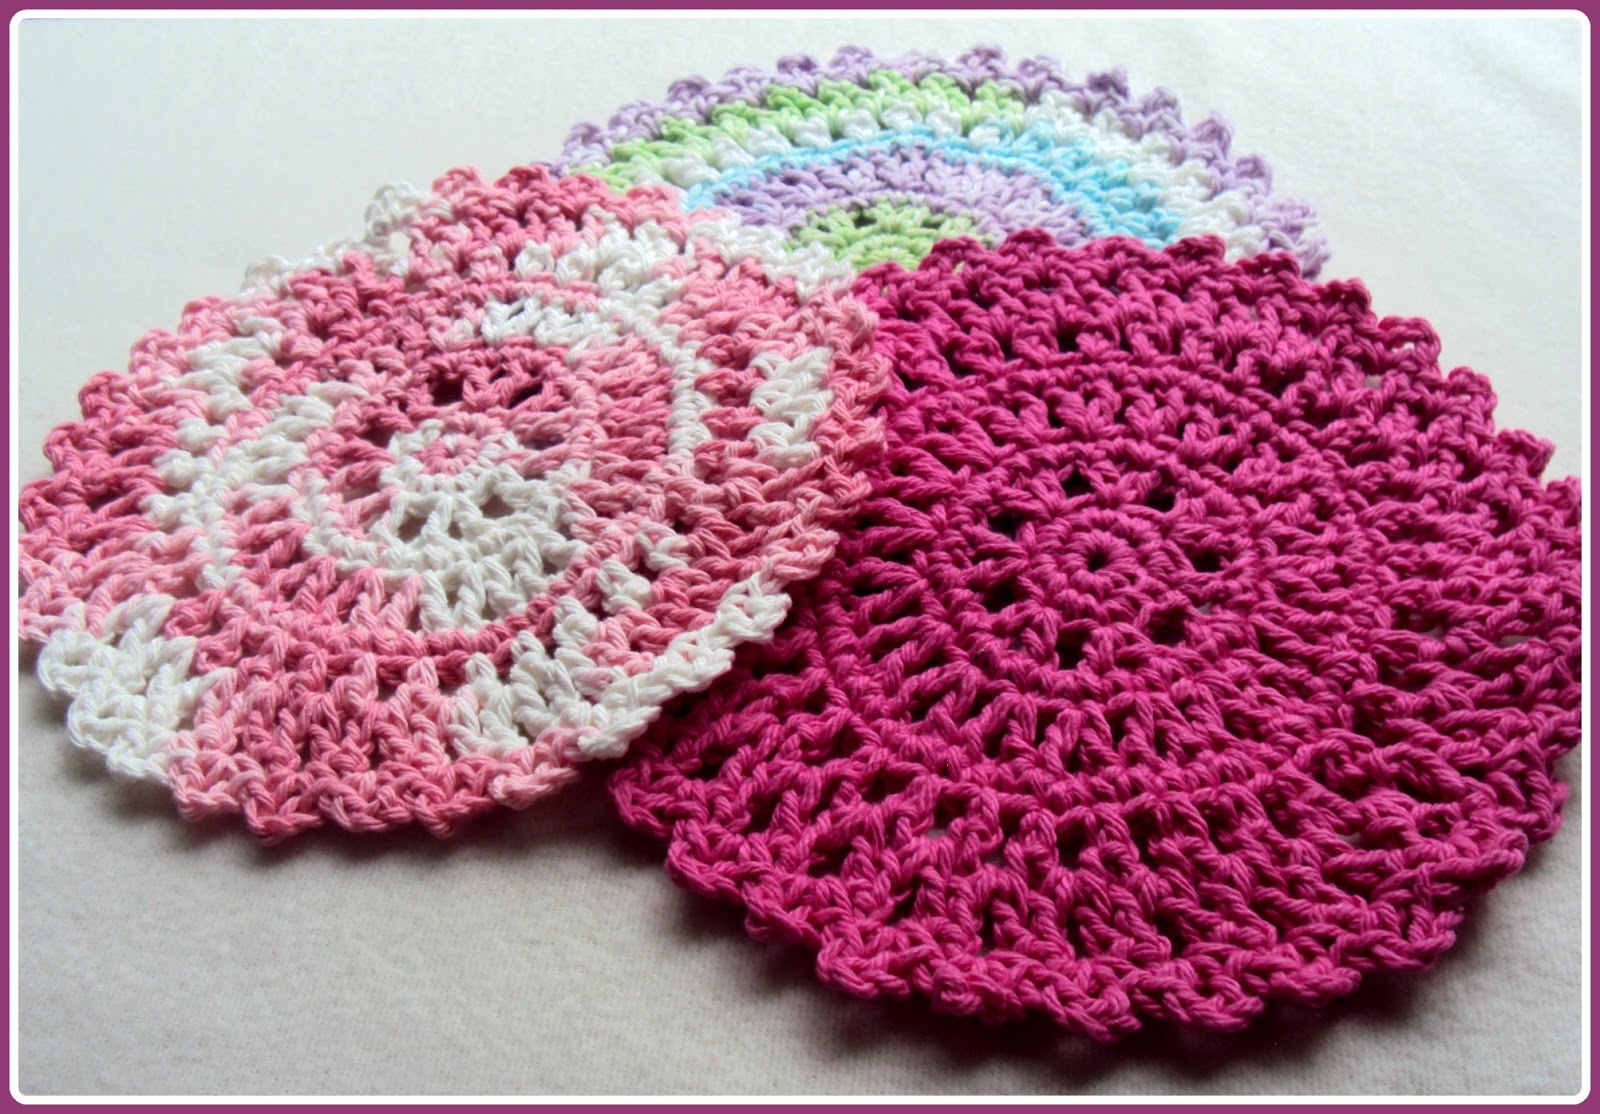 Crochet Patterns Using Cotton Yarn : ... up quickly and beautifully when using both acrylic or cotton yarns